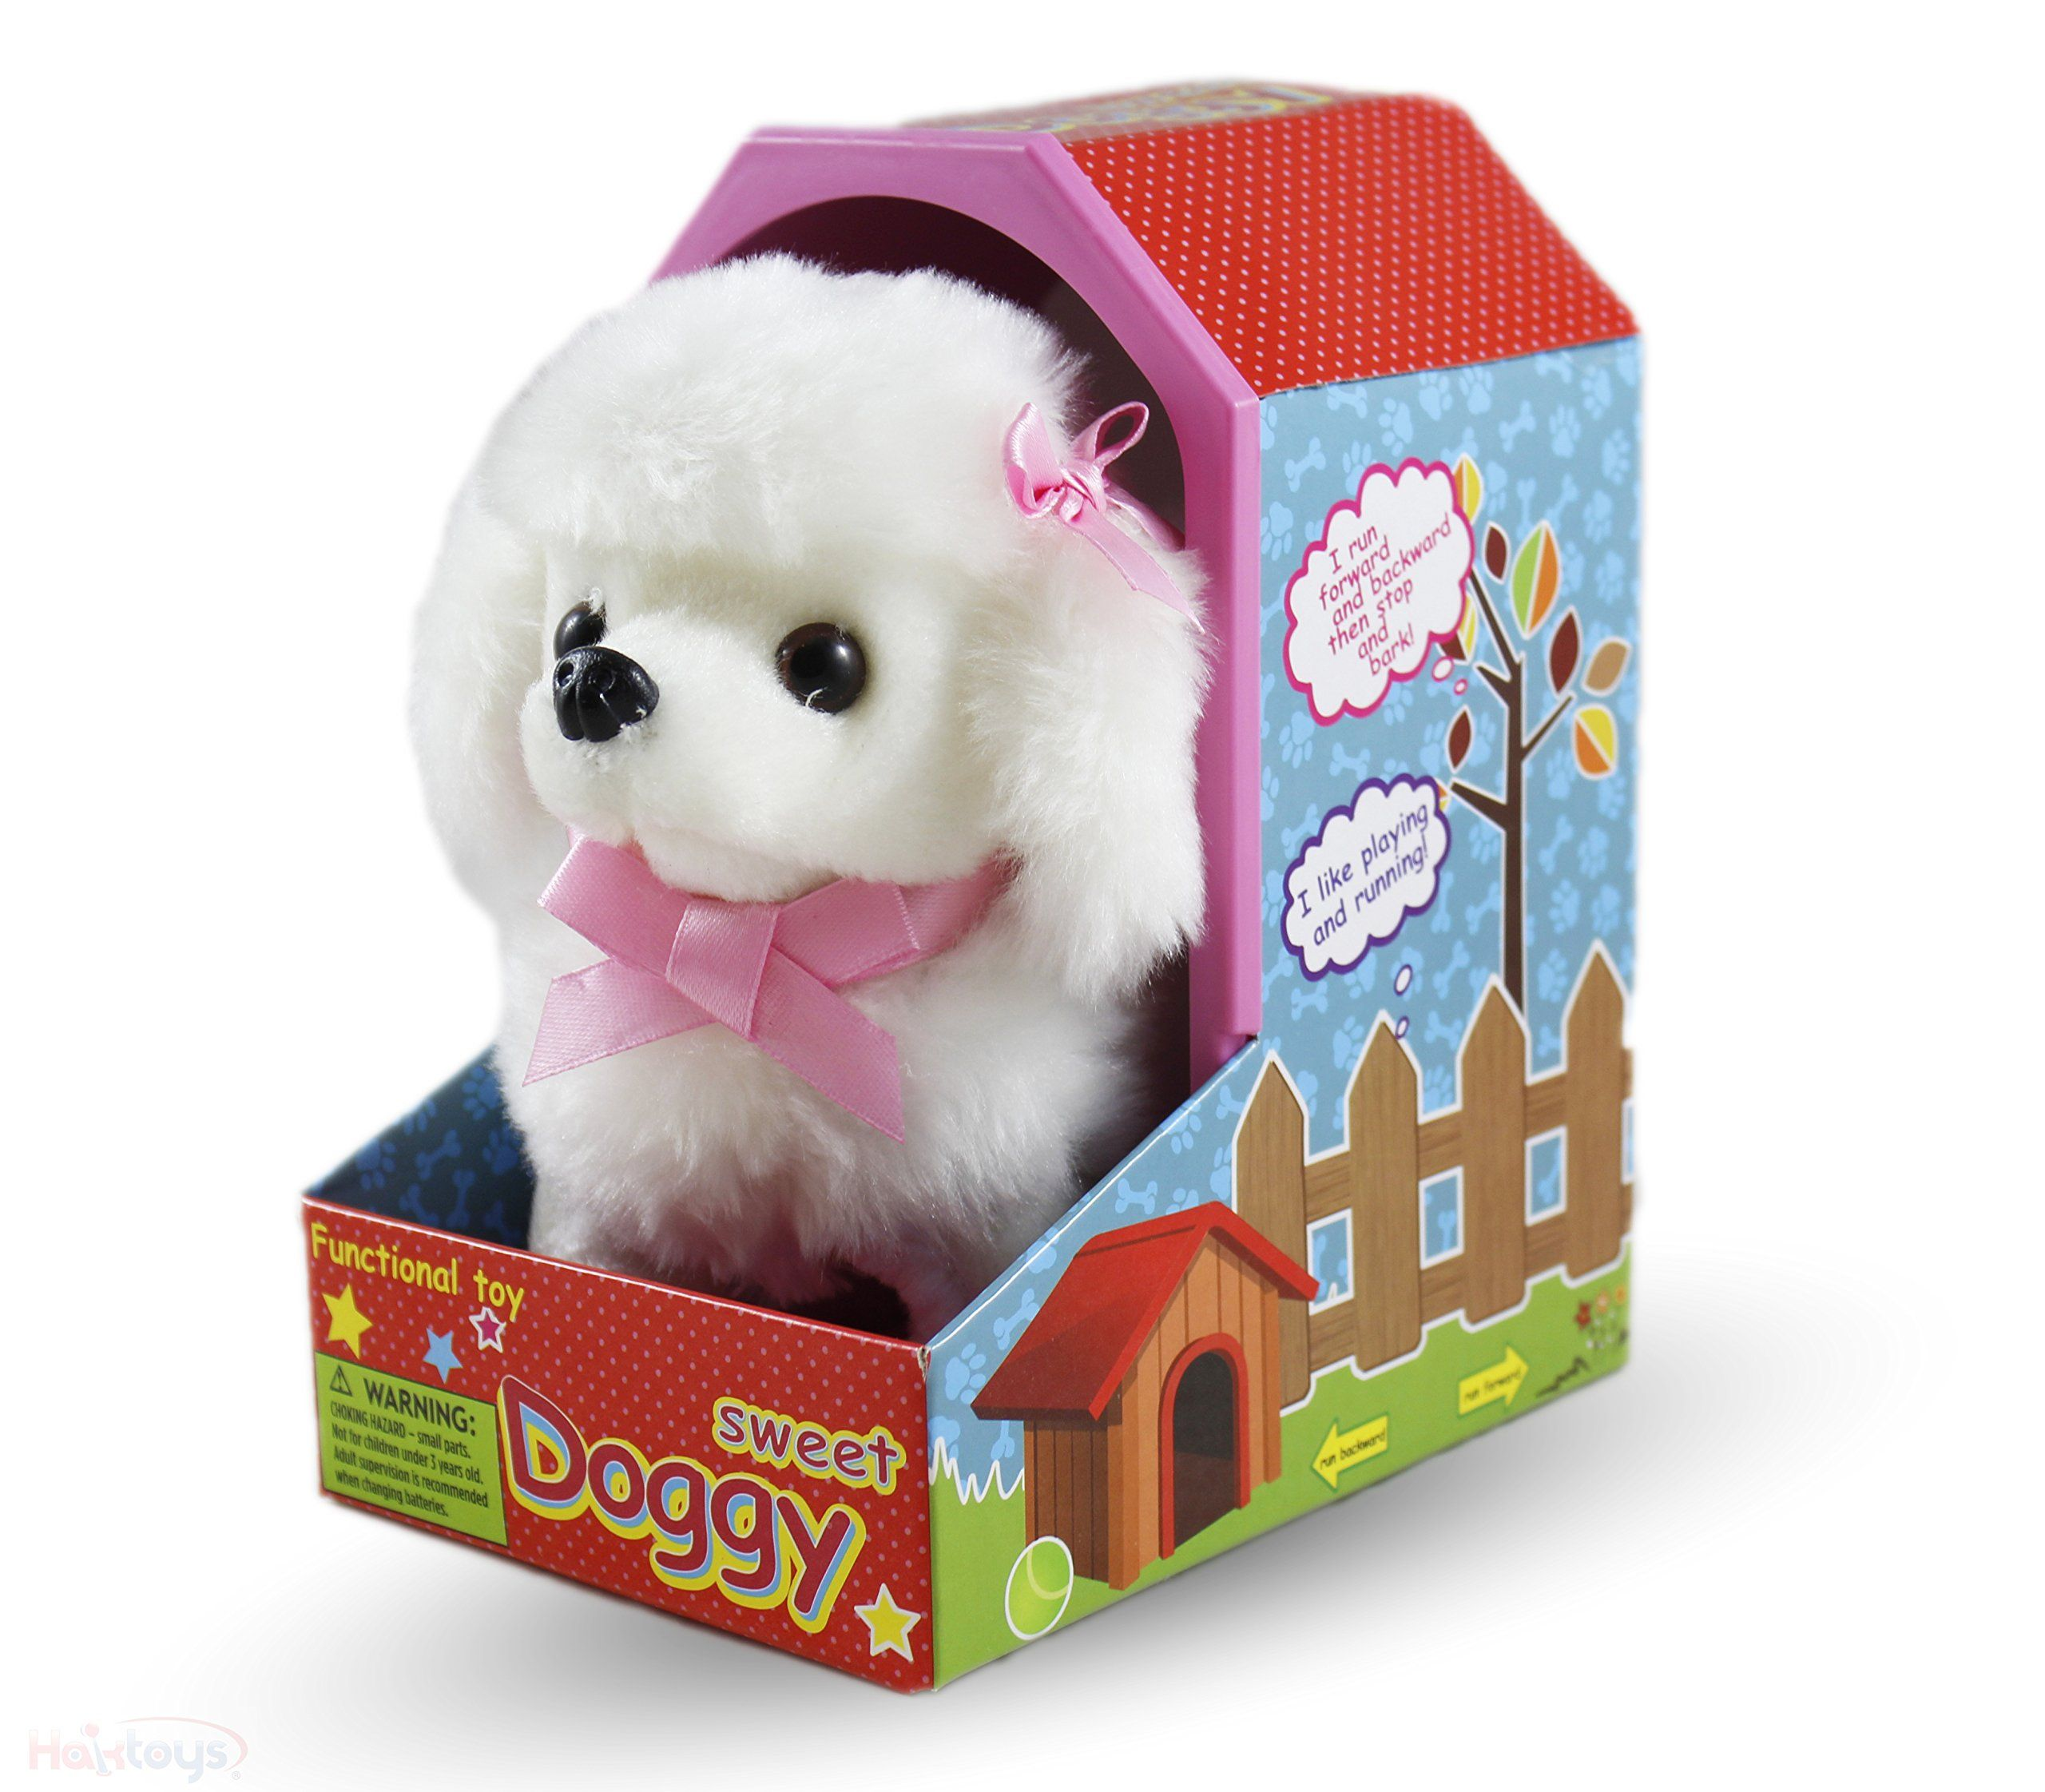 Haktoys Sweet Poodle Plush Doggy Battery Operated Walking Tailwagging And Mechanical Barking Electronic Plush Cute 7a A A Animals For Kids Dog Gifts Dog Toys